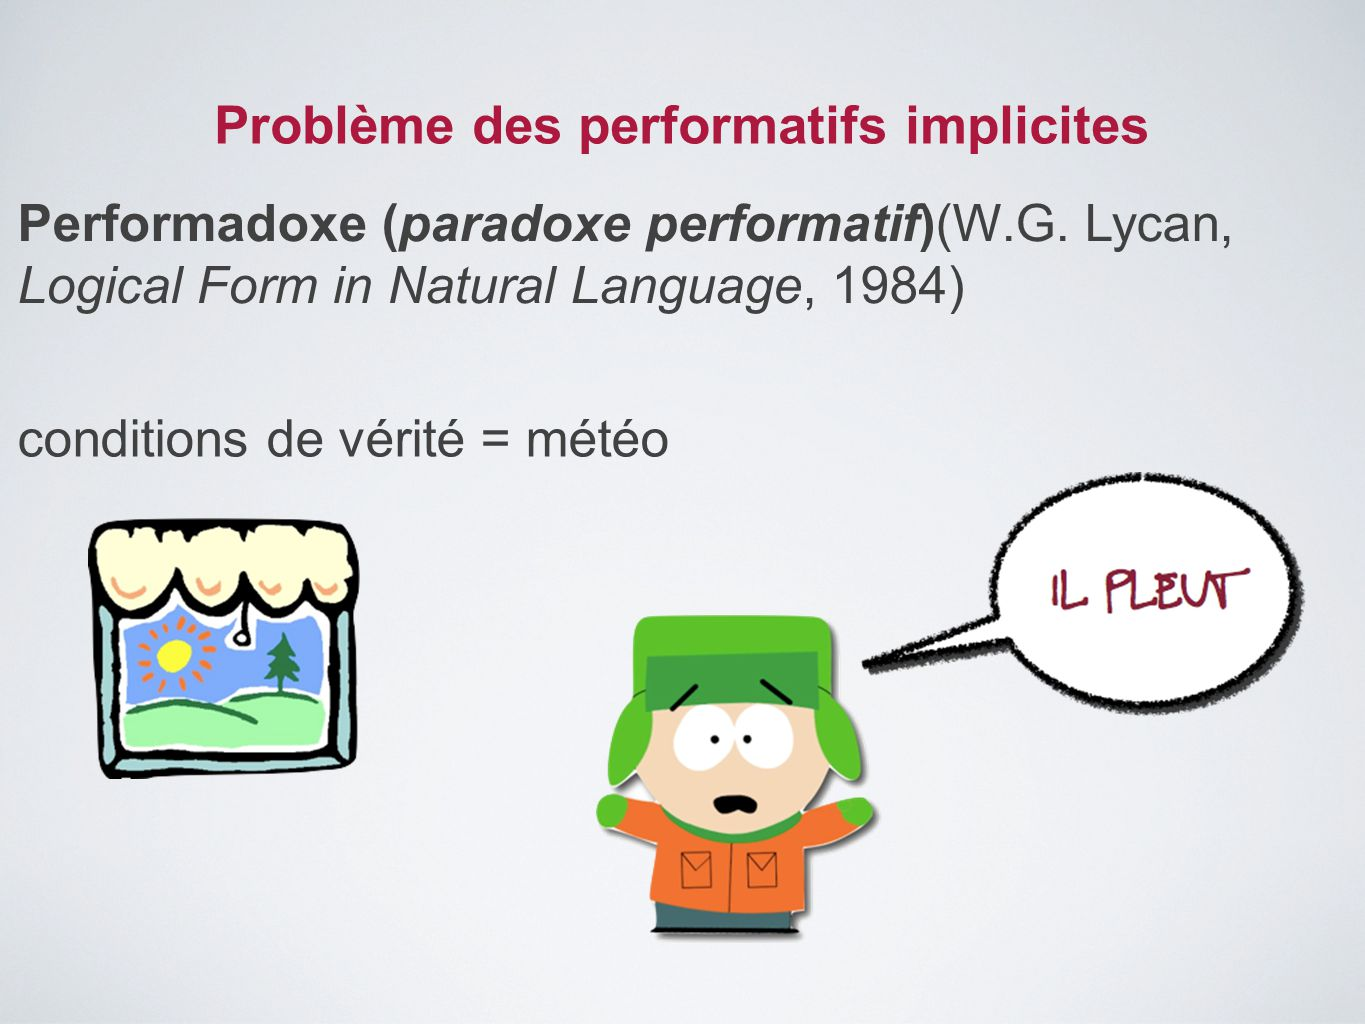 Problème des performatifs implicites Performadoxe (paradoxe performatif)(W.G. Lycan, Logical Form in Natural Language, 1984) conditions de vérité = mé